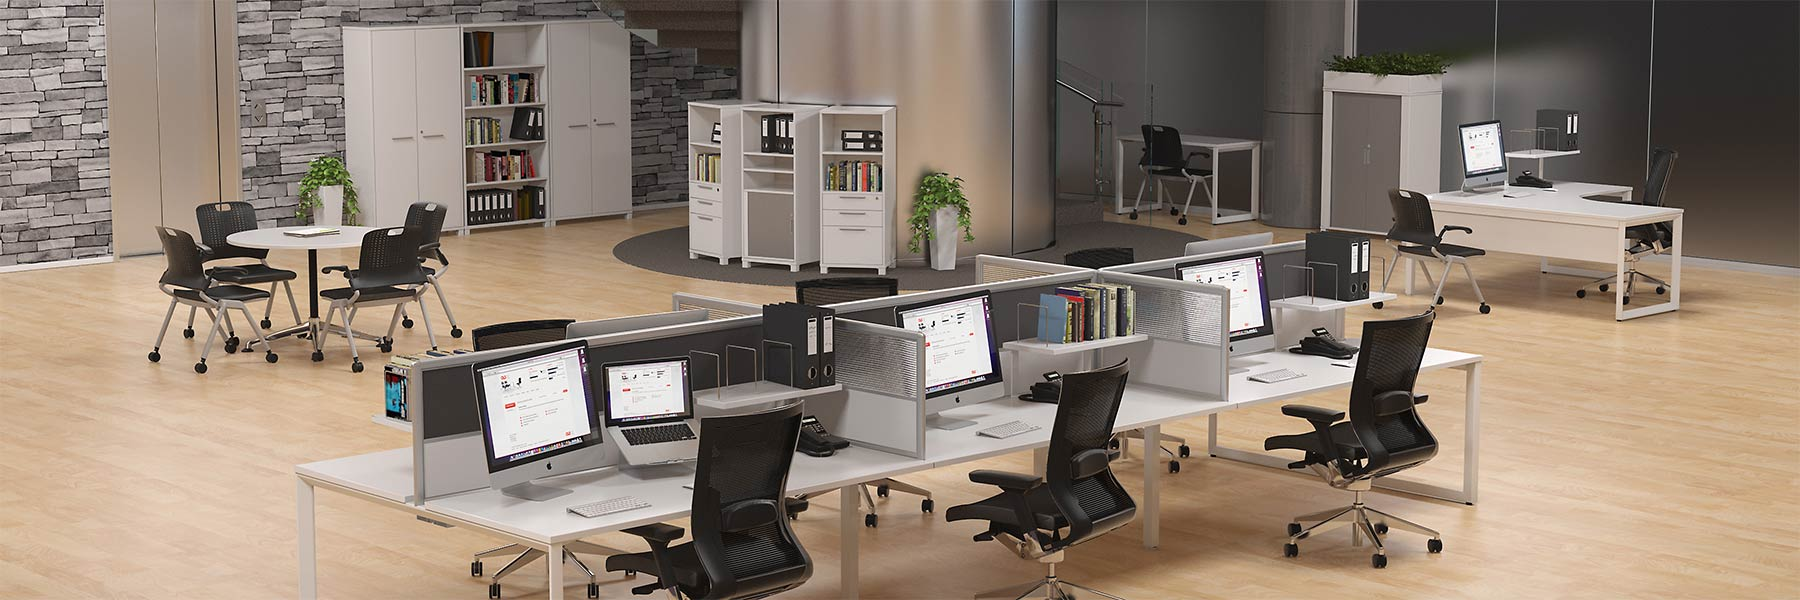 http://www.allstoragesystems.com.au/wp-content/uploads/2016/12/office-fitouts.jpg